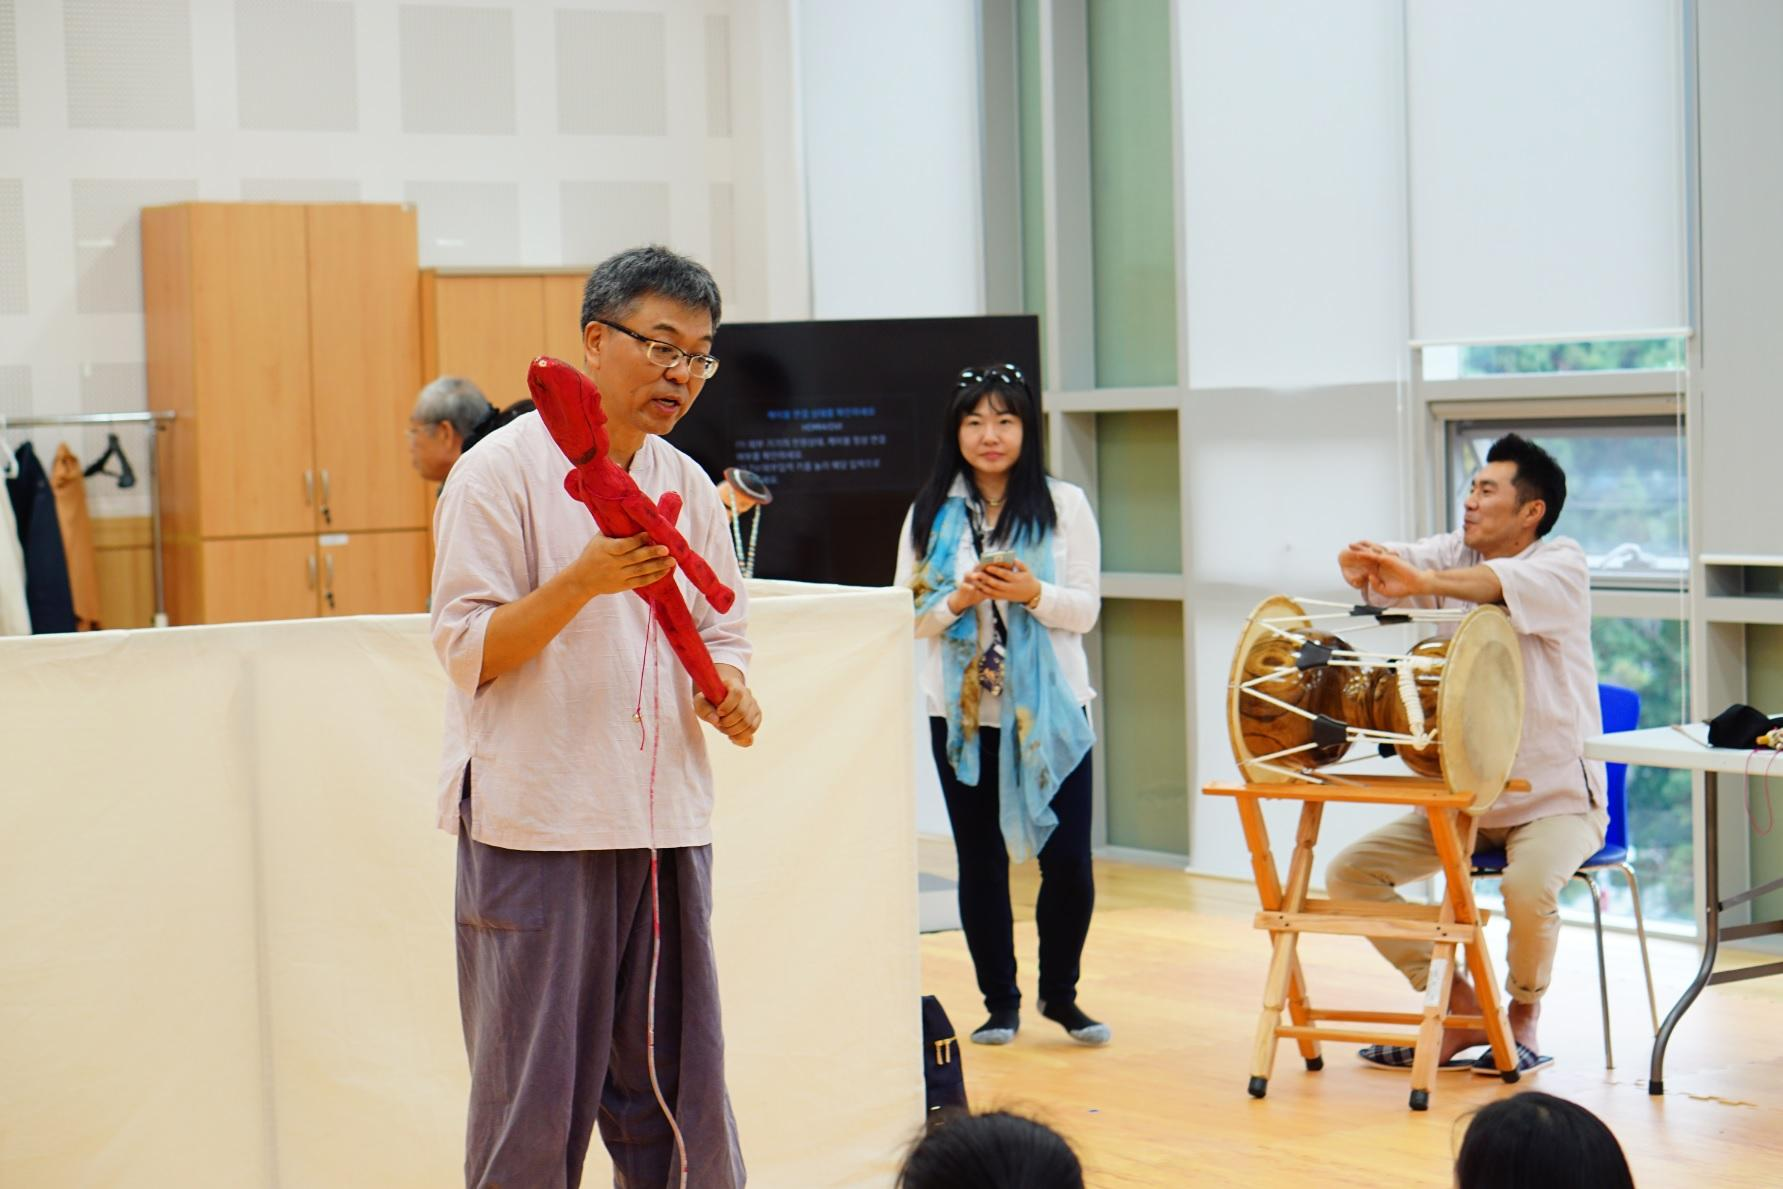 We have learned and experienced Namsadang Nori in the National Institute of Oral and Intangible Heritage of Humanity.